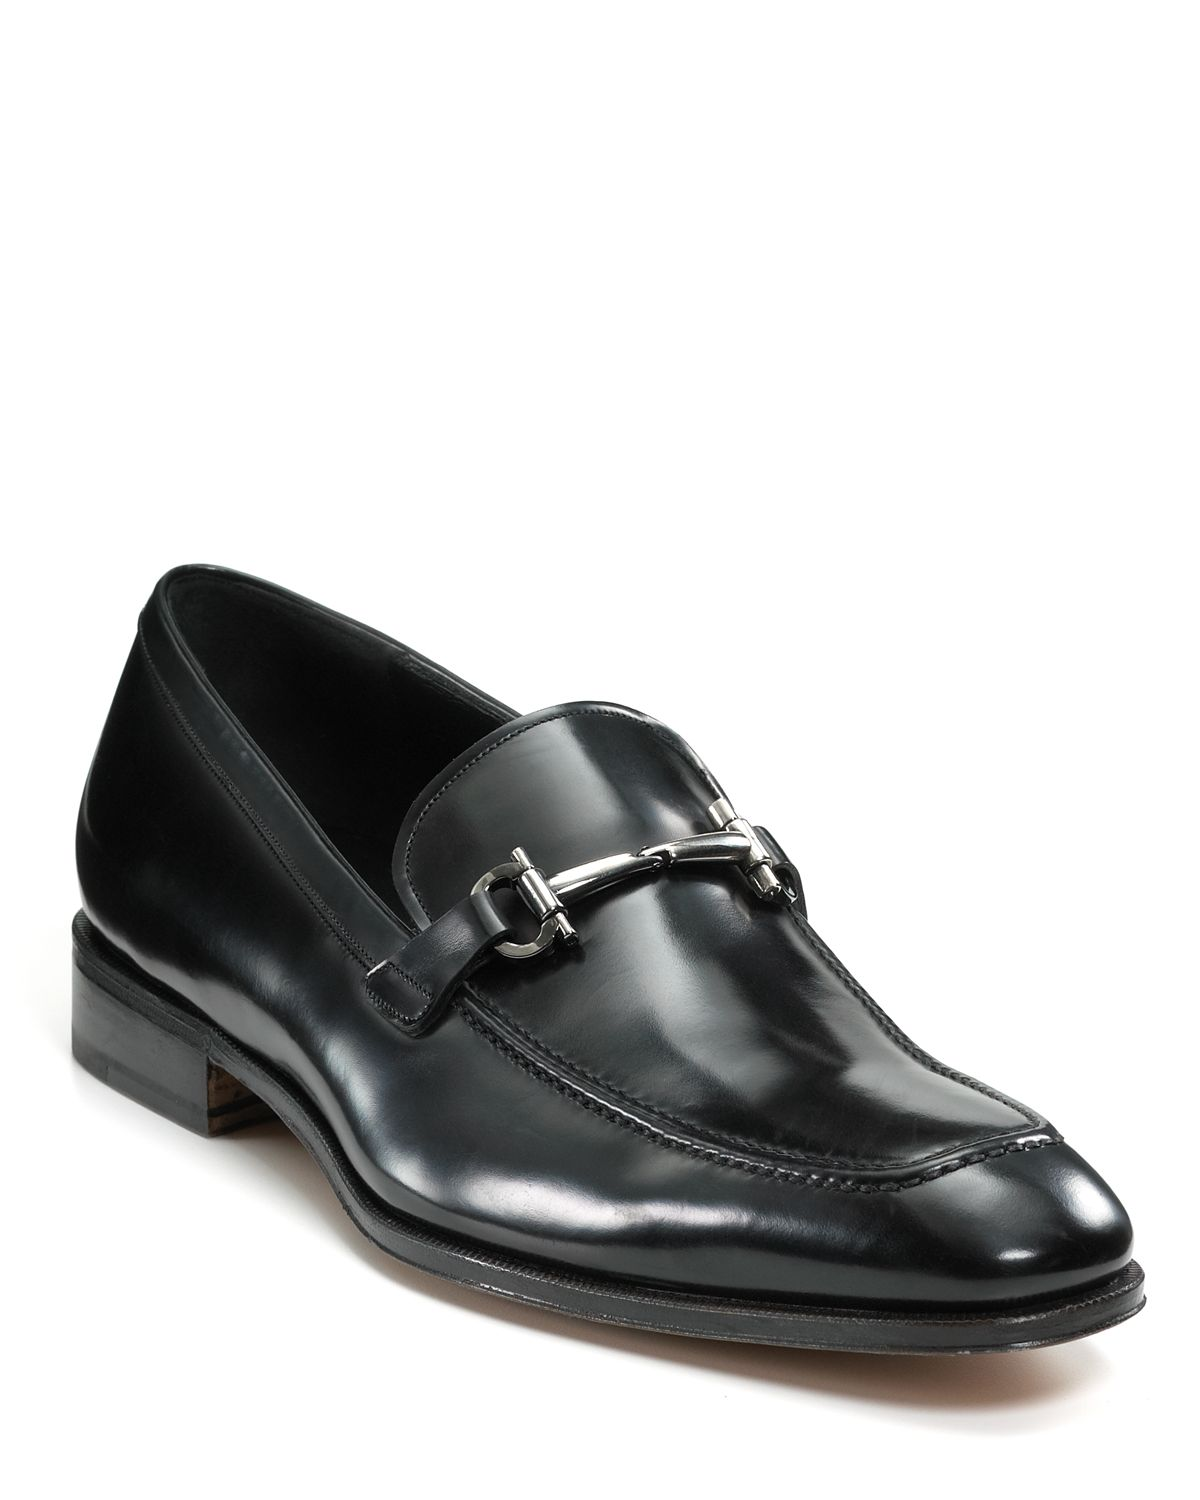 Salvatore Ferragamo Fenice Leather Loafers